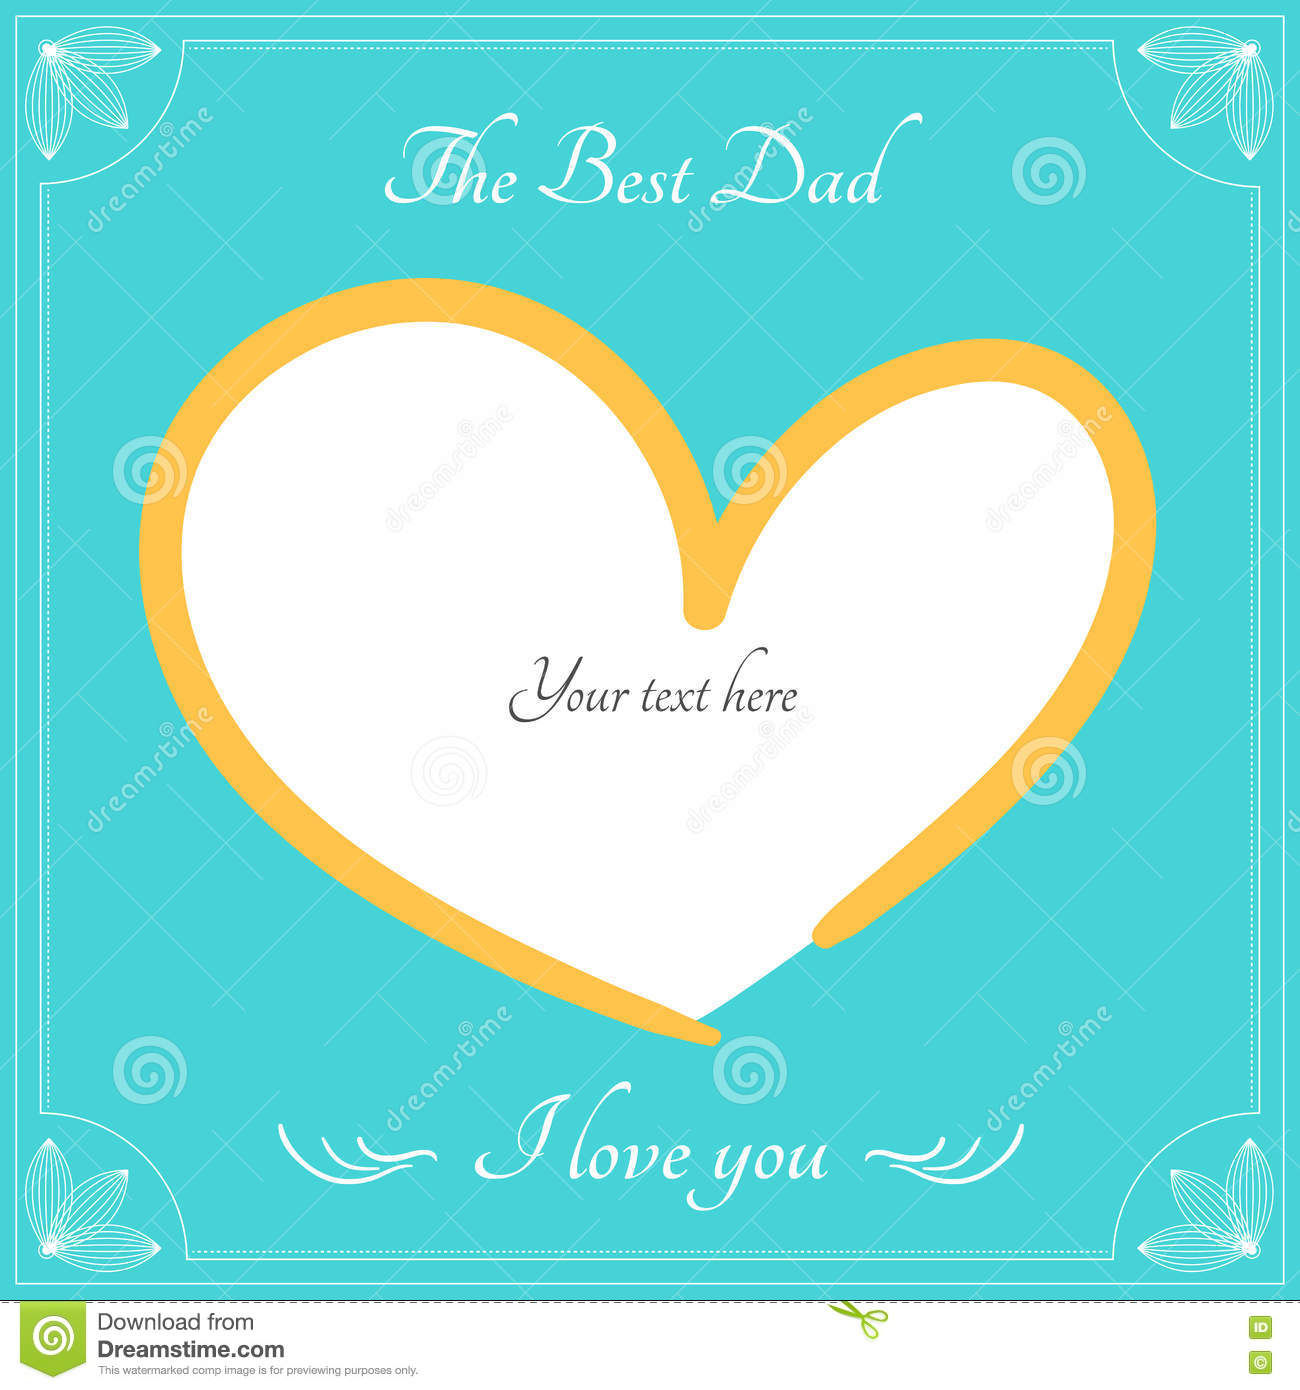 The Best Dad Card Fro Happy Fathers Day Greeting Vector Backgro